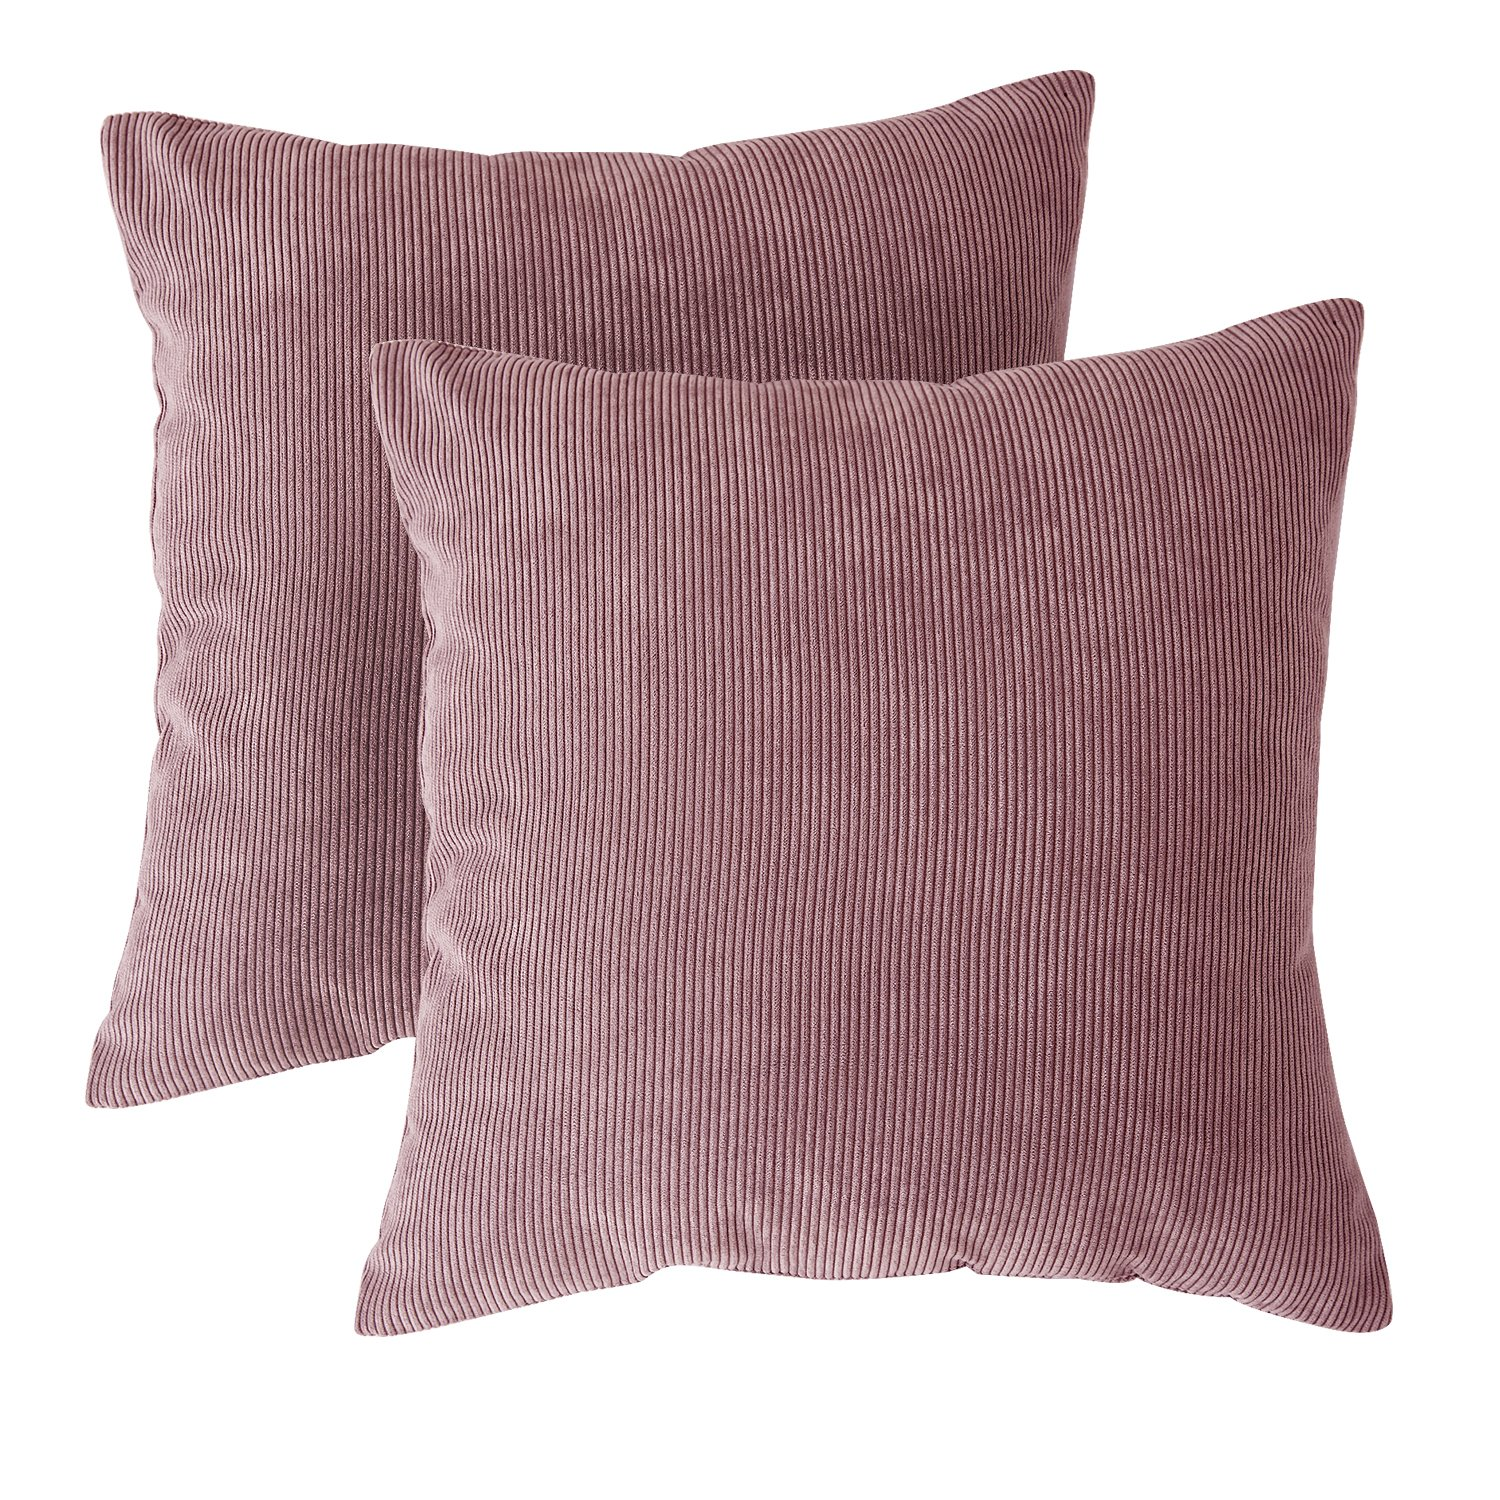 Deconovo Corduroy Throw Pillow Covers Plush Velvet Throw Pillow Cases with Invisible Zipper for Bed Lilas Pink Purple 2 Pieces 18x18 Inch (45x45 cm) No Pillow Insert